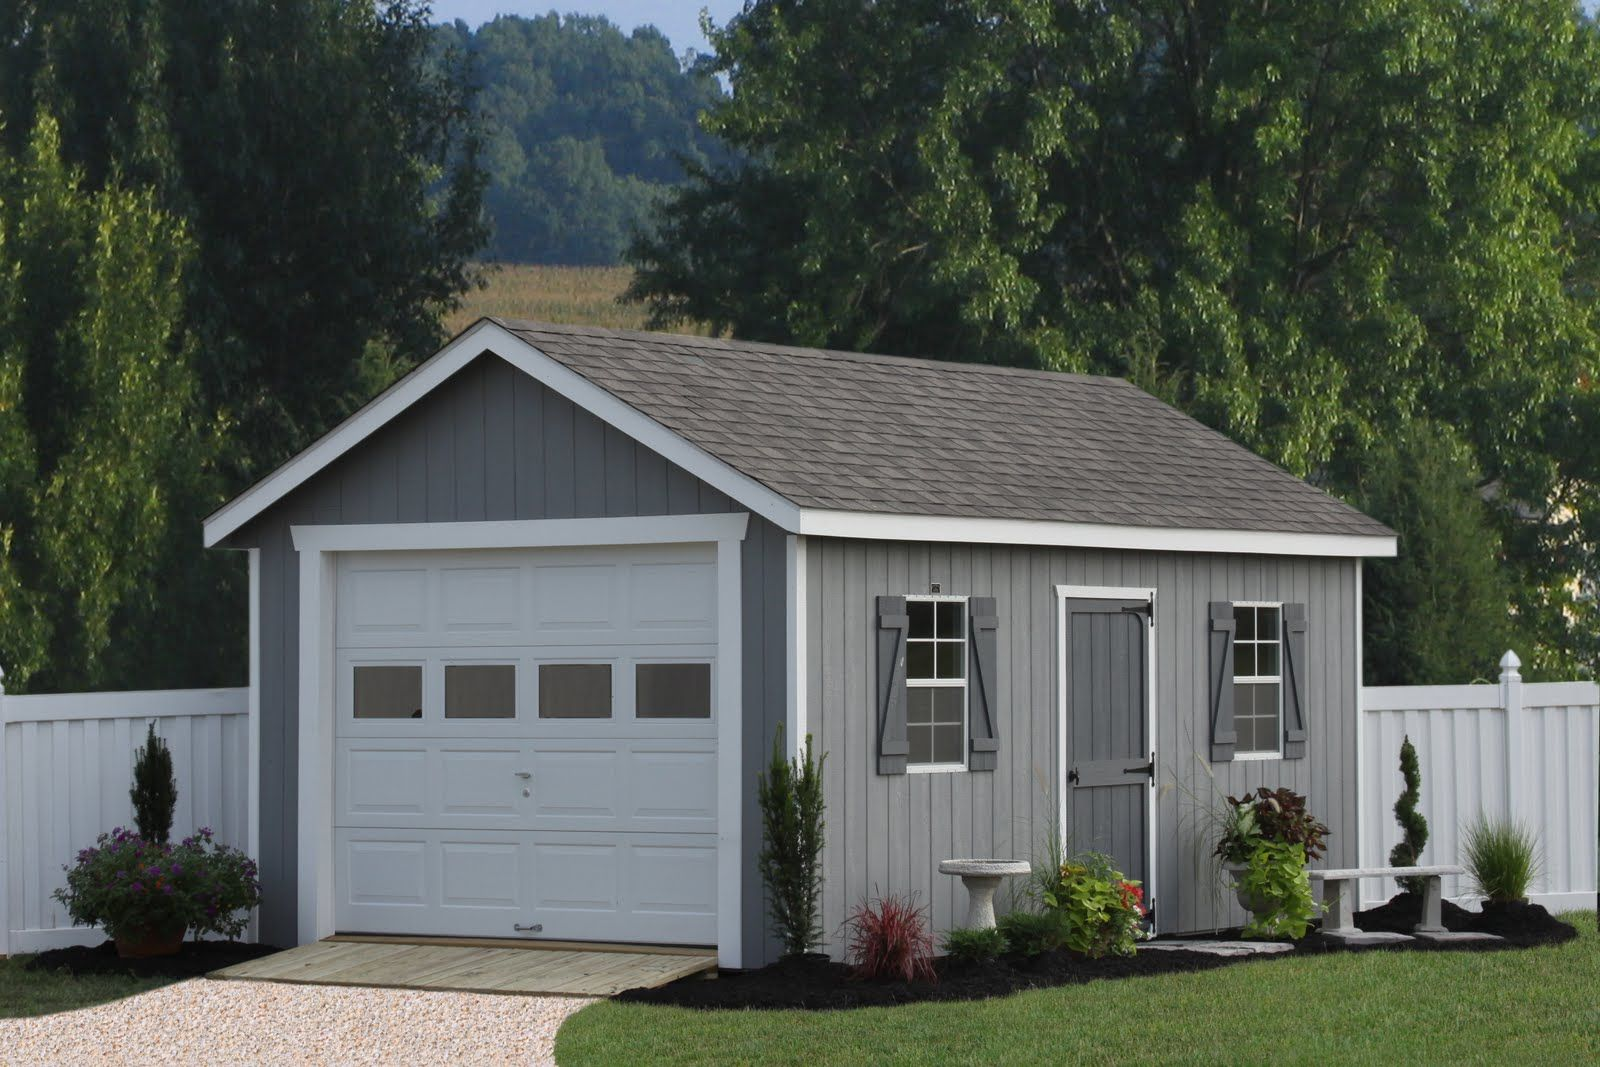 Add on garage plans 12x20 classic one car garage for 1 5 car garage plans